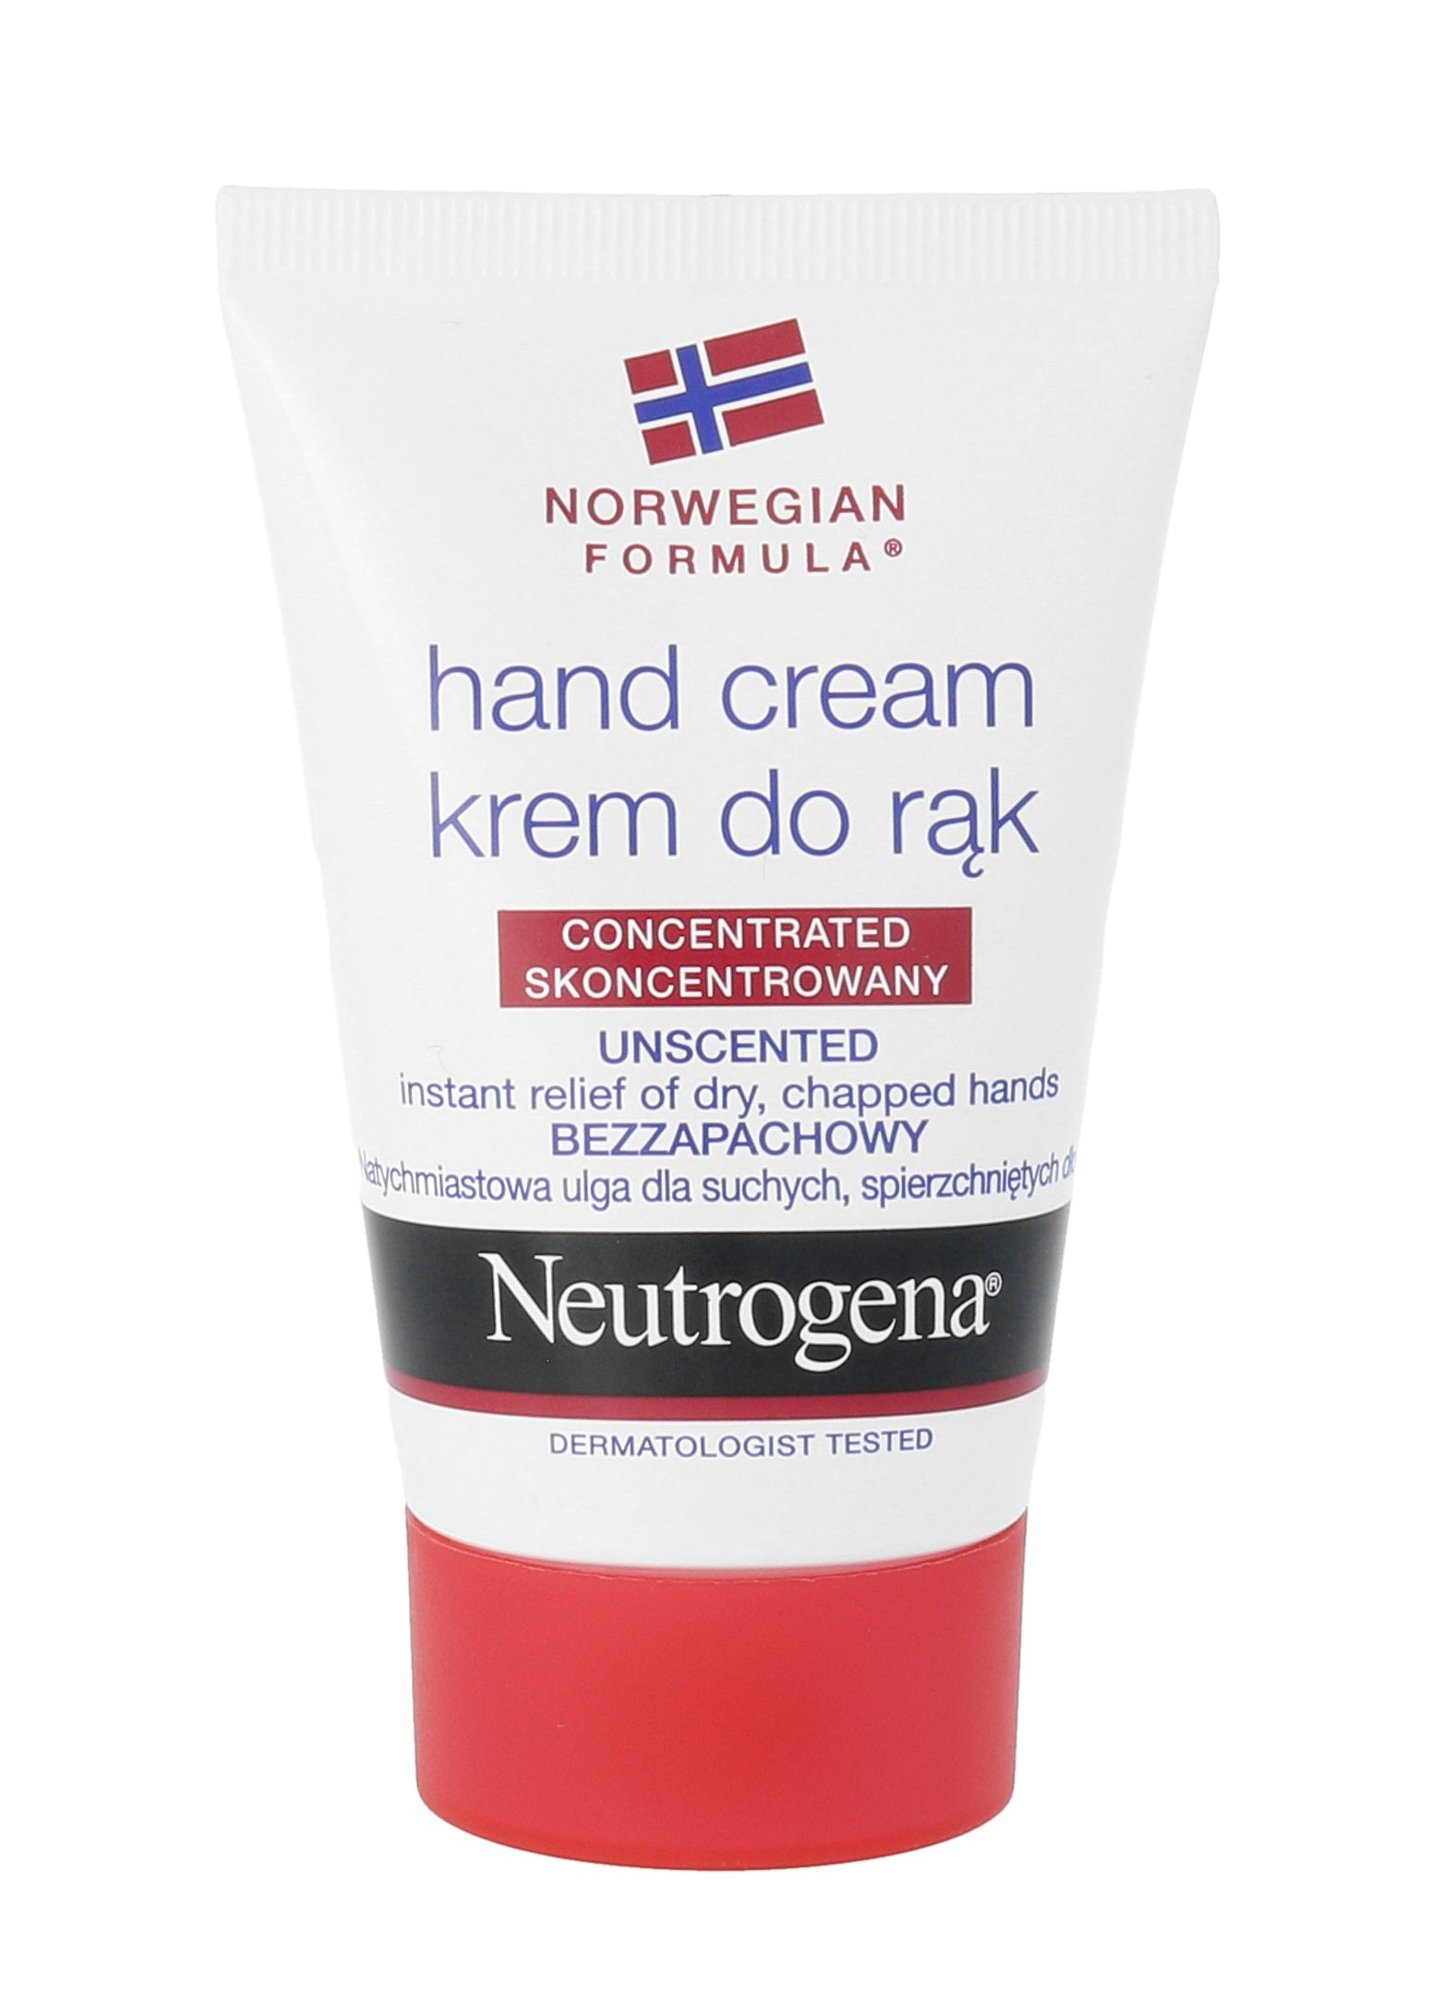 Neutrogena Norwegian Formula Cosmetic 50ml  Unscented Hand Cream